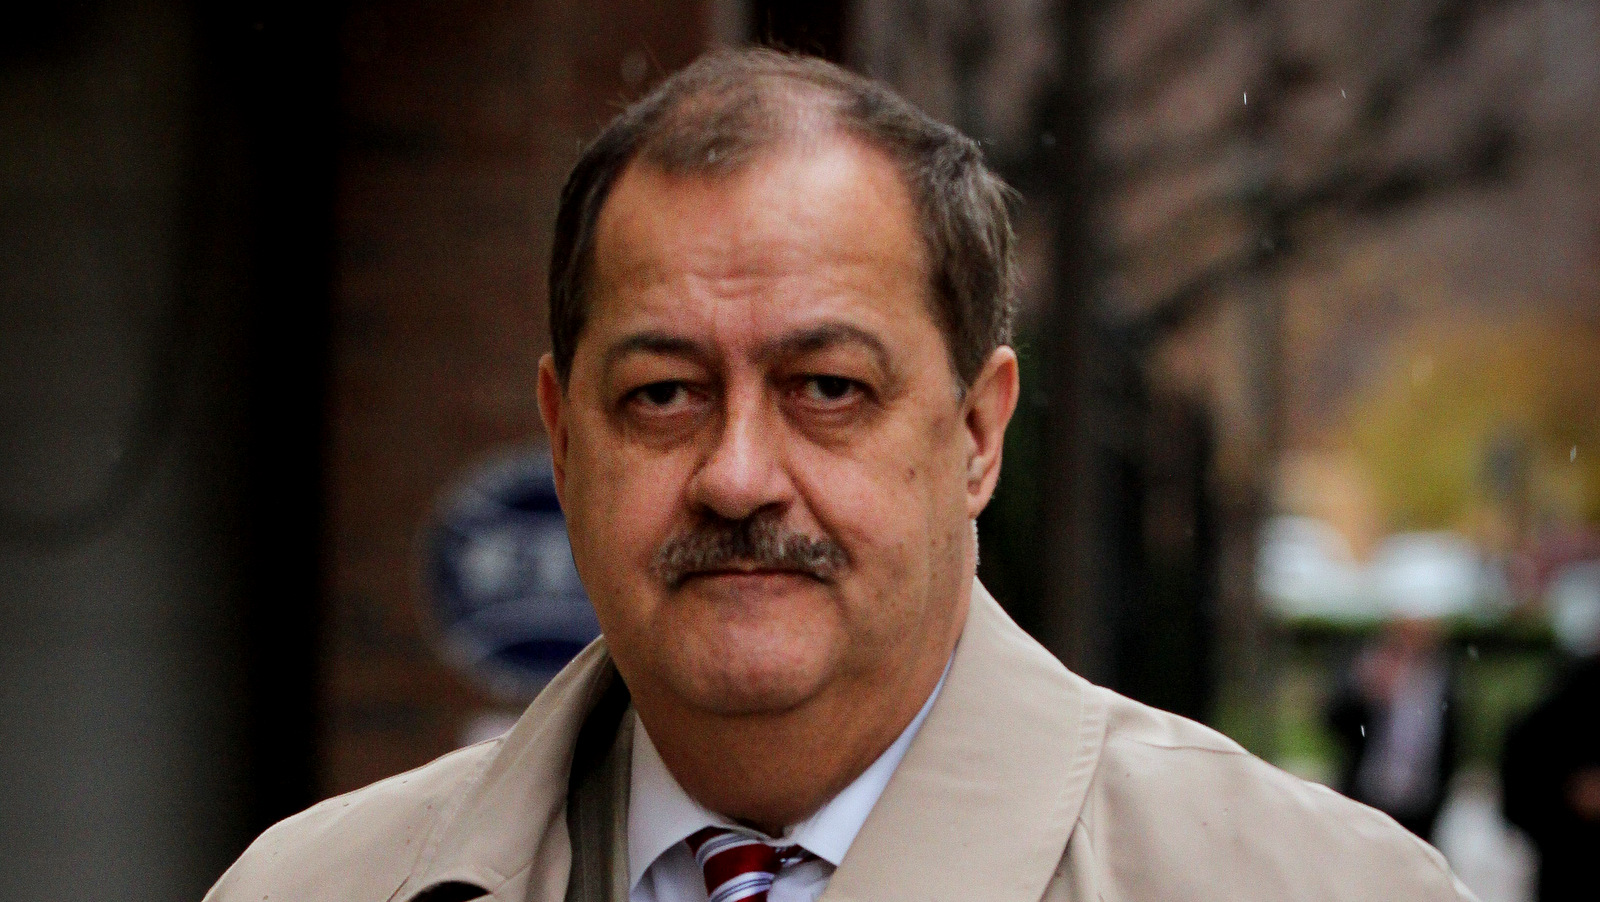 Former Massey Energy CEO Don Blankenship makes his way out of the Robert C. Byrd U.S. Courthouse during a break in deliberations, Dec. 1, 2015. (AP/Tyler Evert)